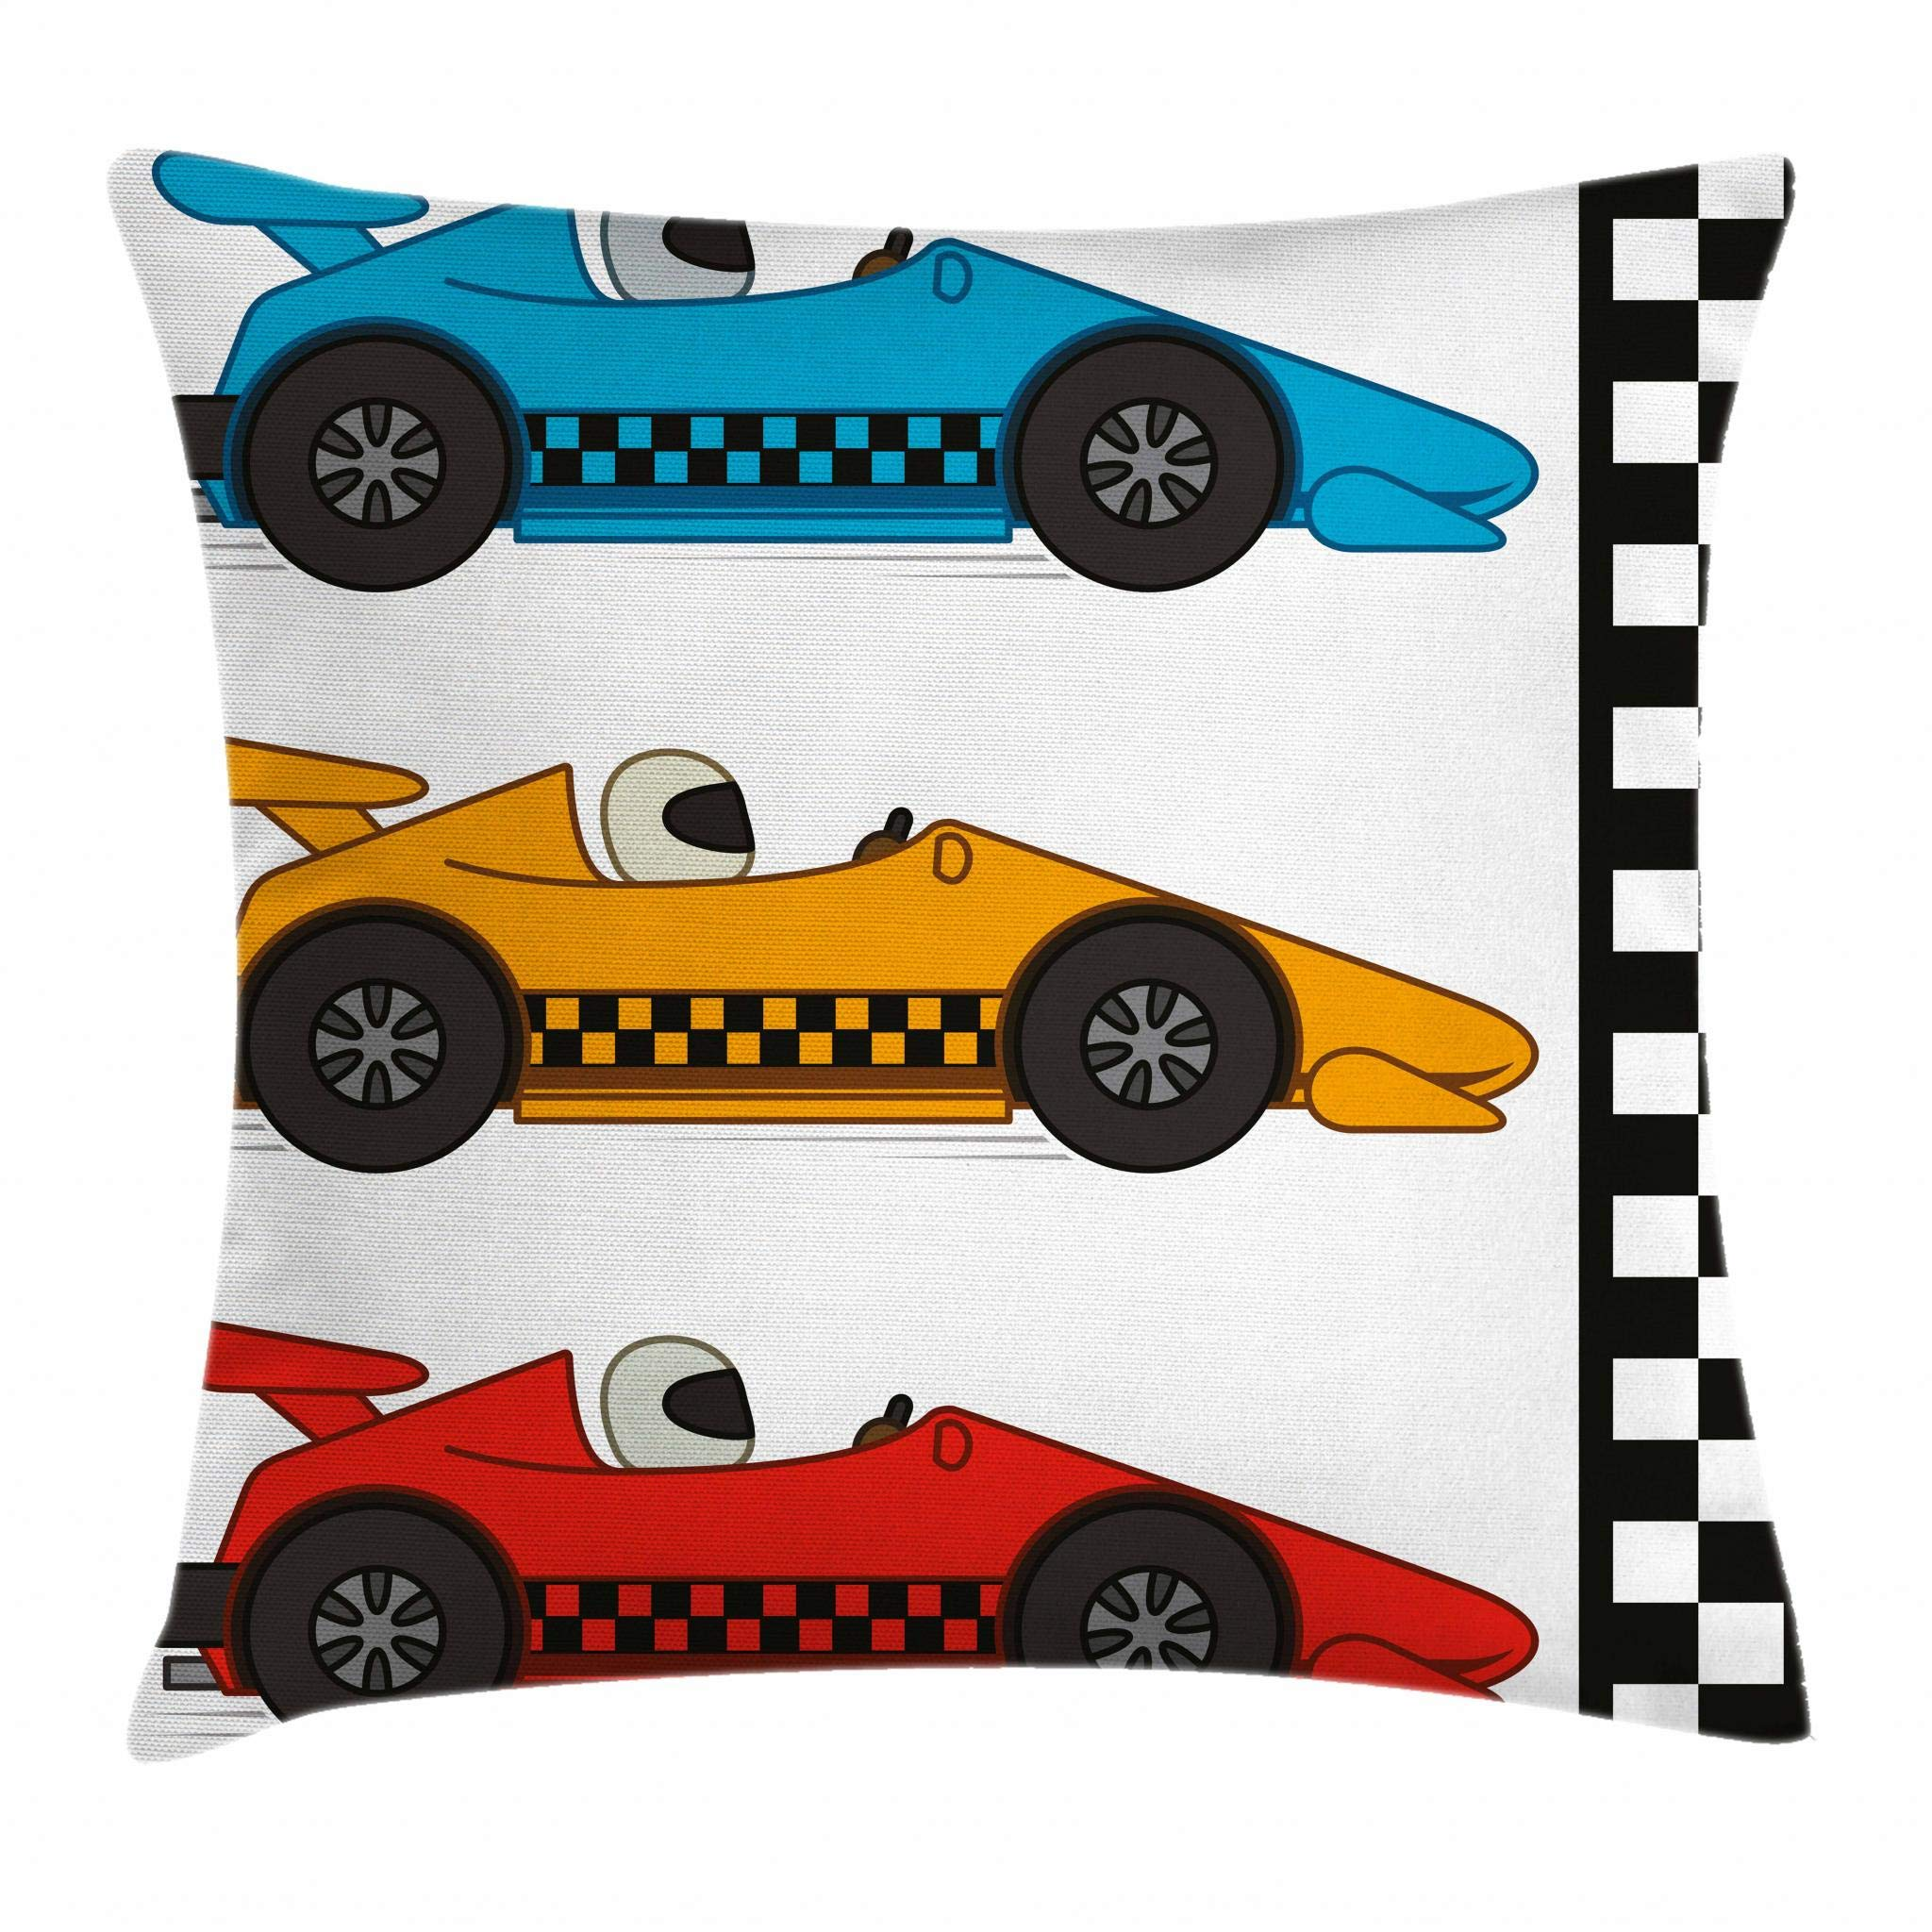 Lunarable Boy's Room Throw Pillow Cushion Cover, Race Cars at Start Line Adrenaline Exotic Sports Championship Artsy Theme, Decorative Square Accent Pillow Case, 18 X 18 Inches, Marigold Blue Red